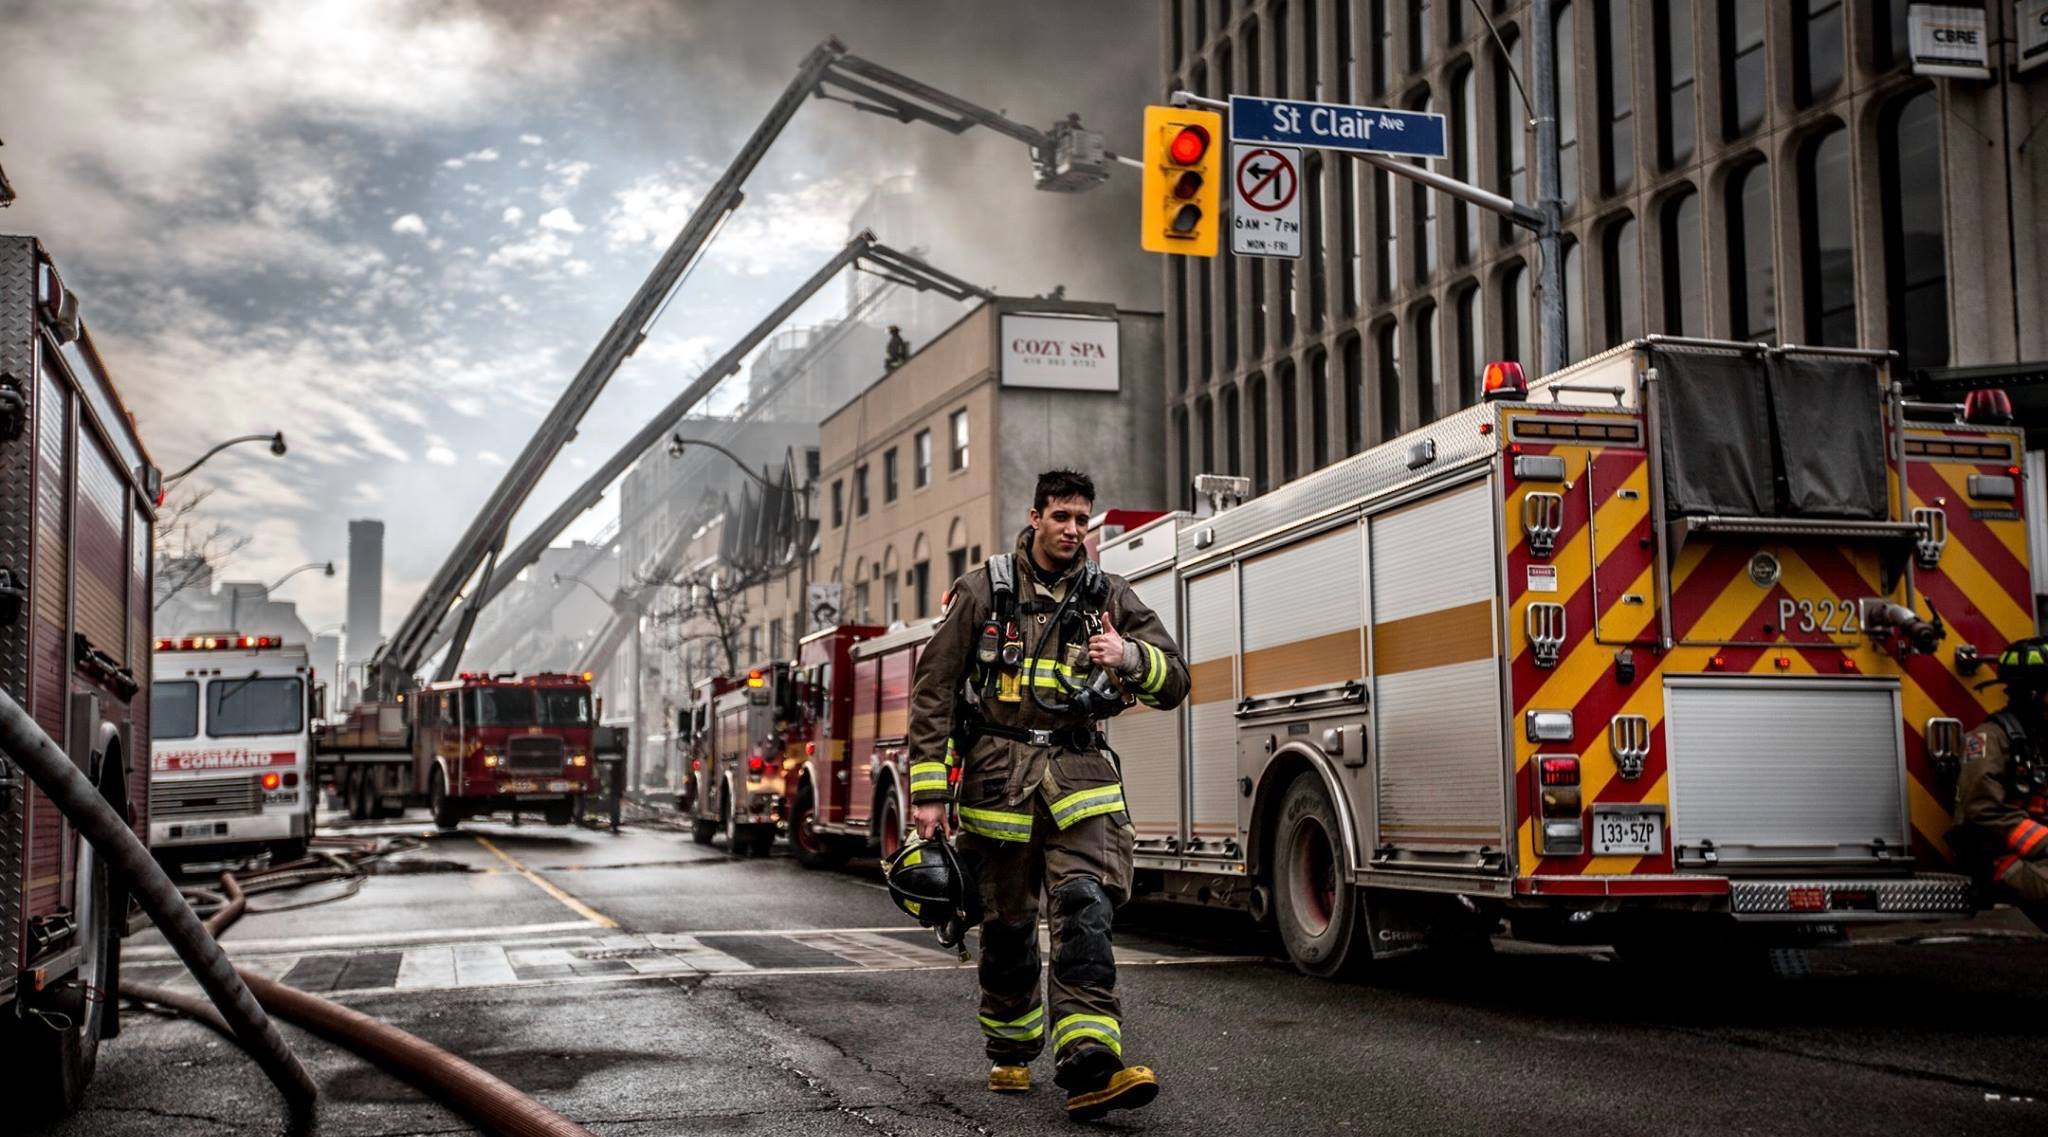 Toronto Fire Fighters release behind the scenes images from 6-alarm fire (PHOTOS)